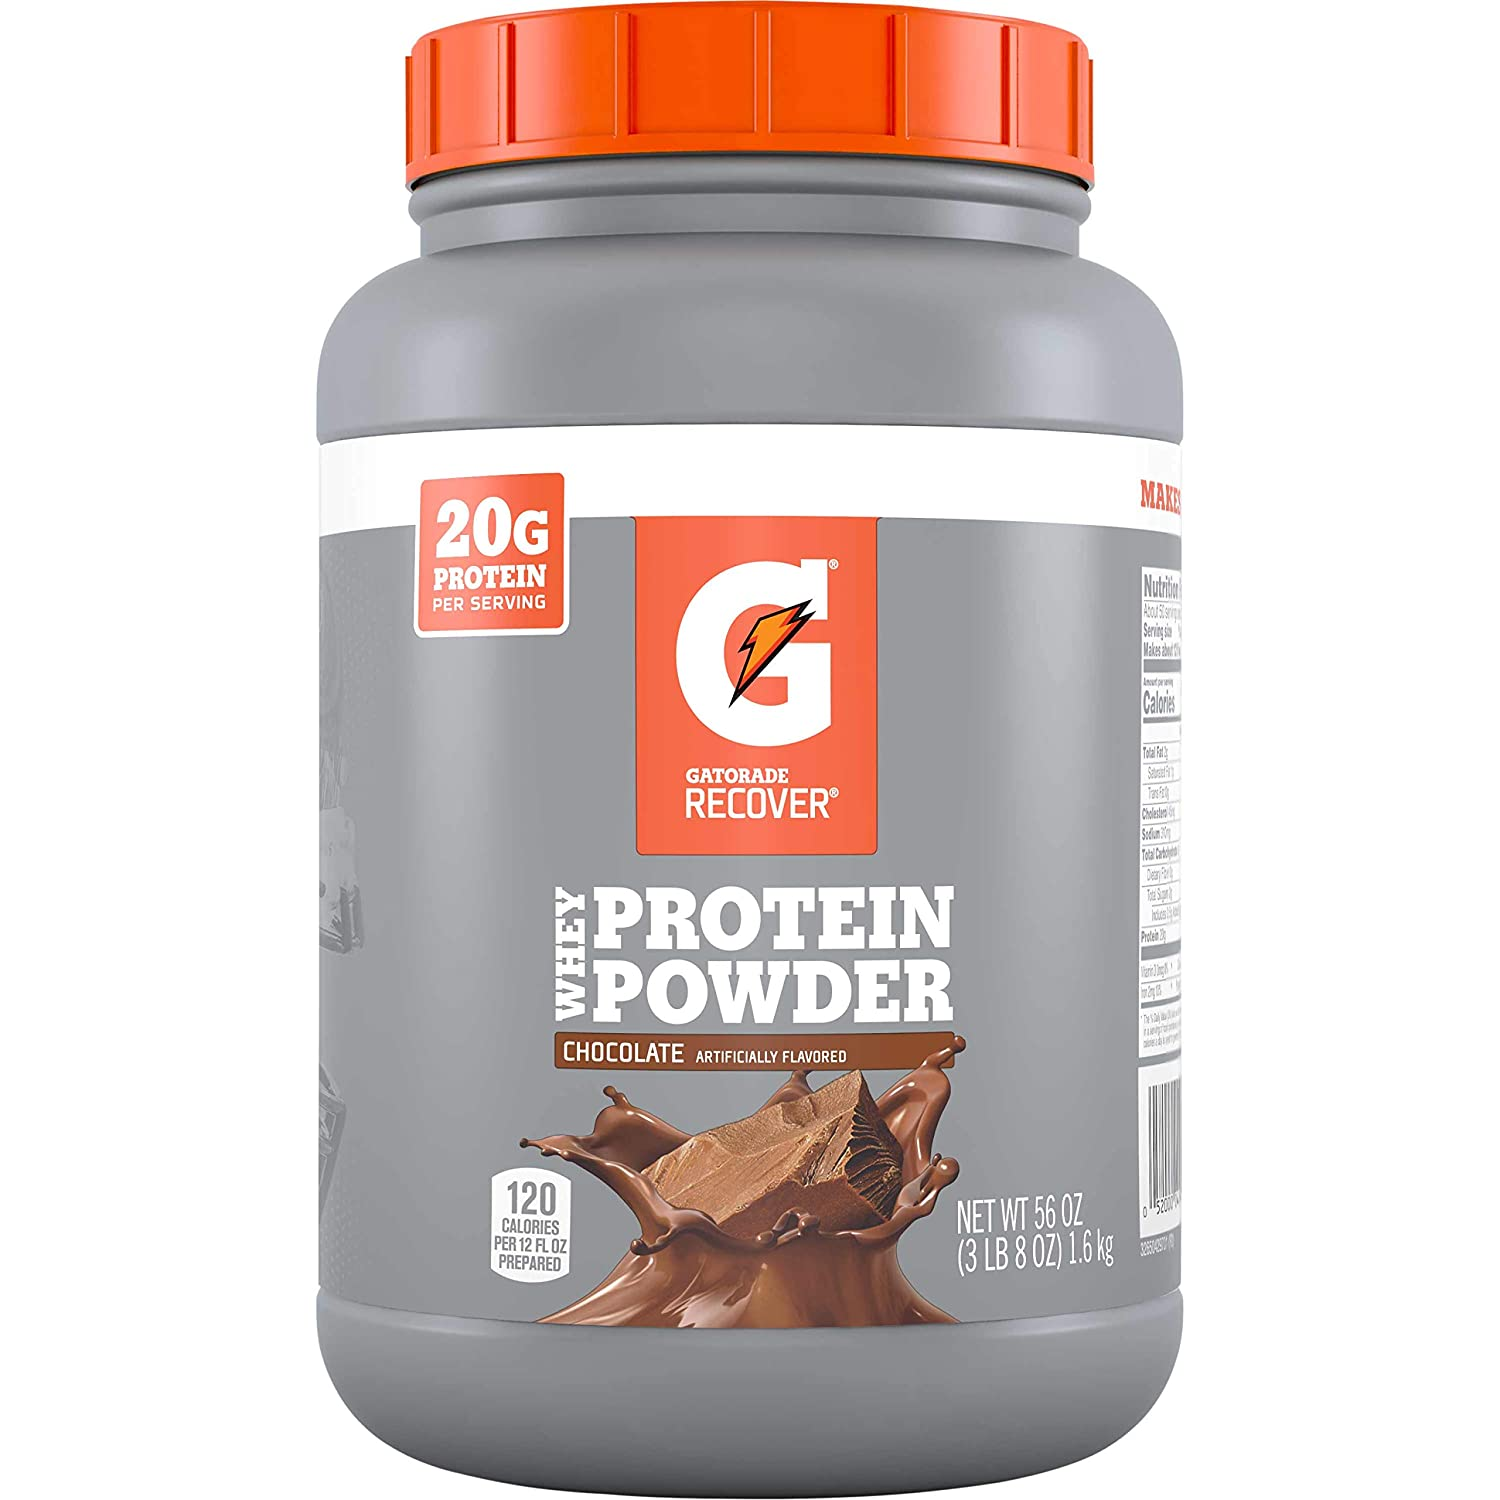 Gatorade Whey Protein Powder, Chocolate, 56 oz Canister 50 servings per canister, 20 grams of protein per serving